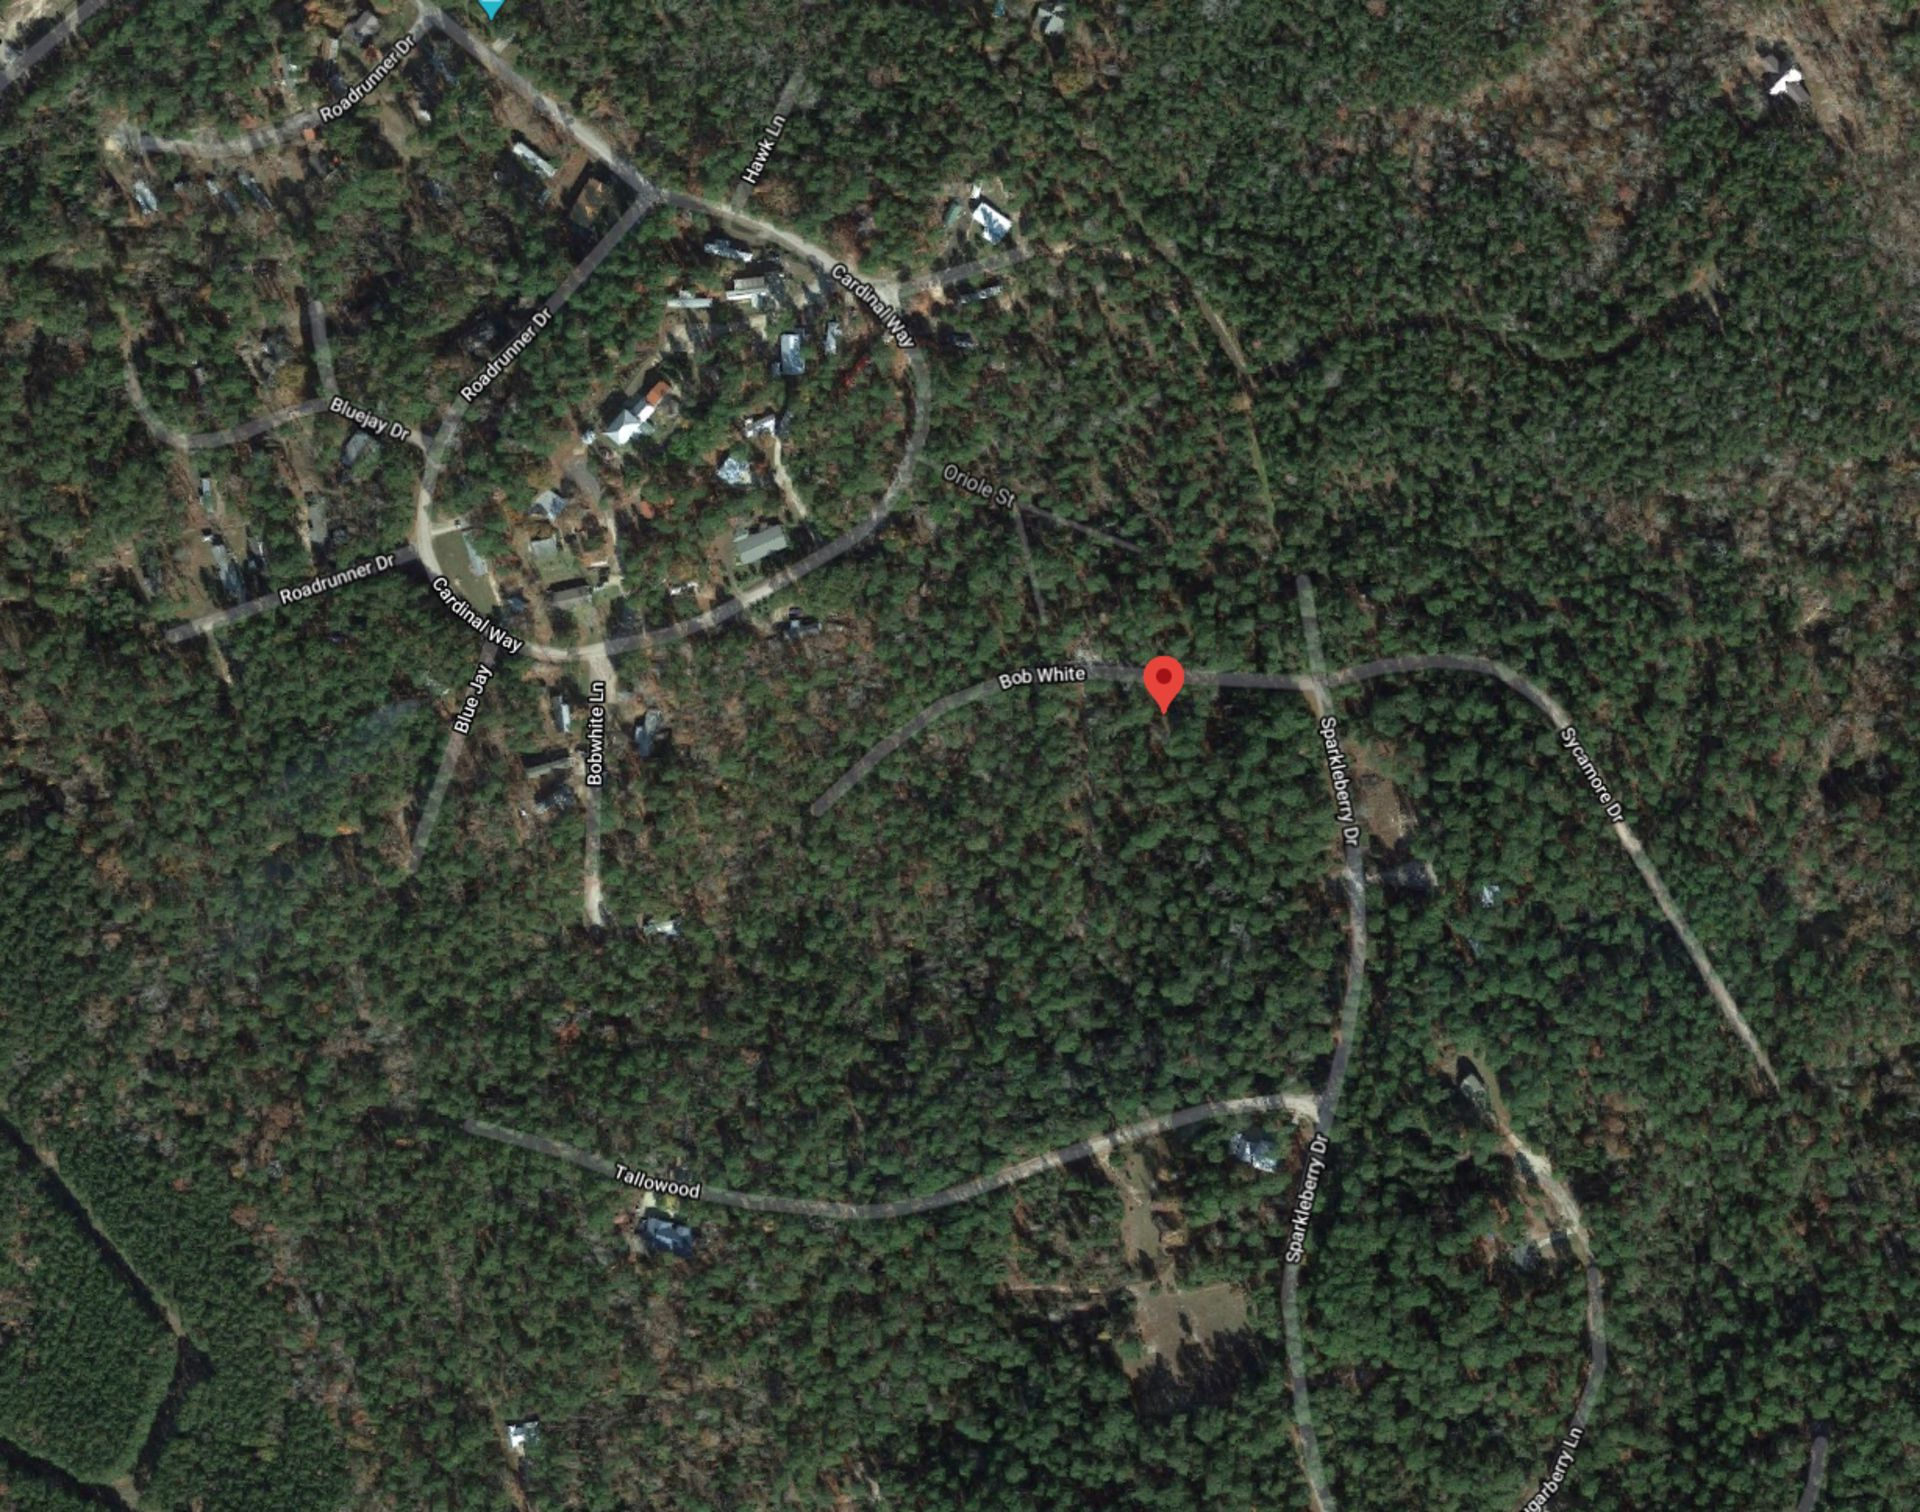 Build on Your Beautiful Lot in Texas Pineywoods! - Image 5 of 7